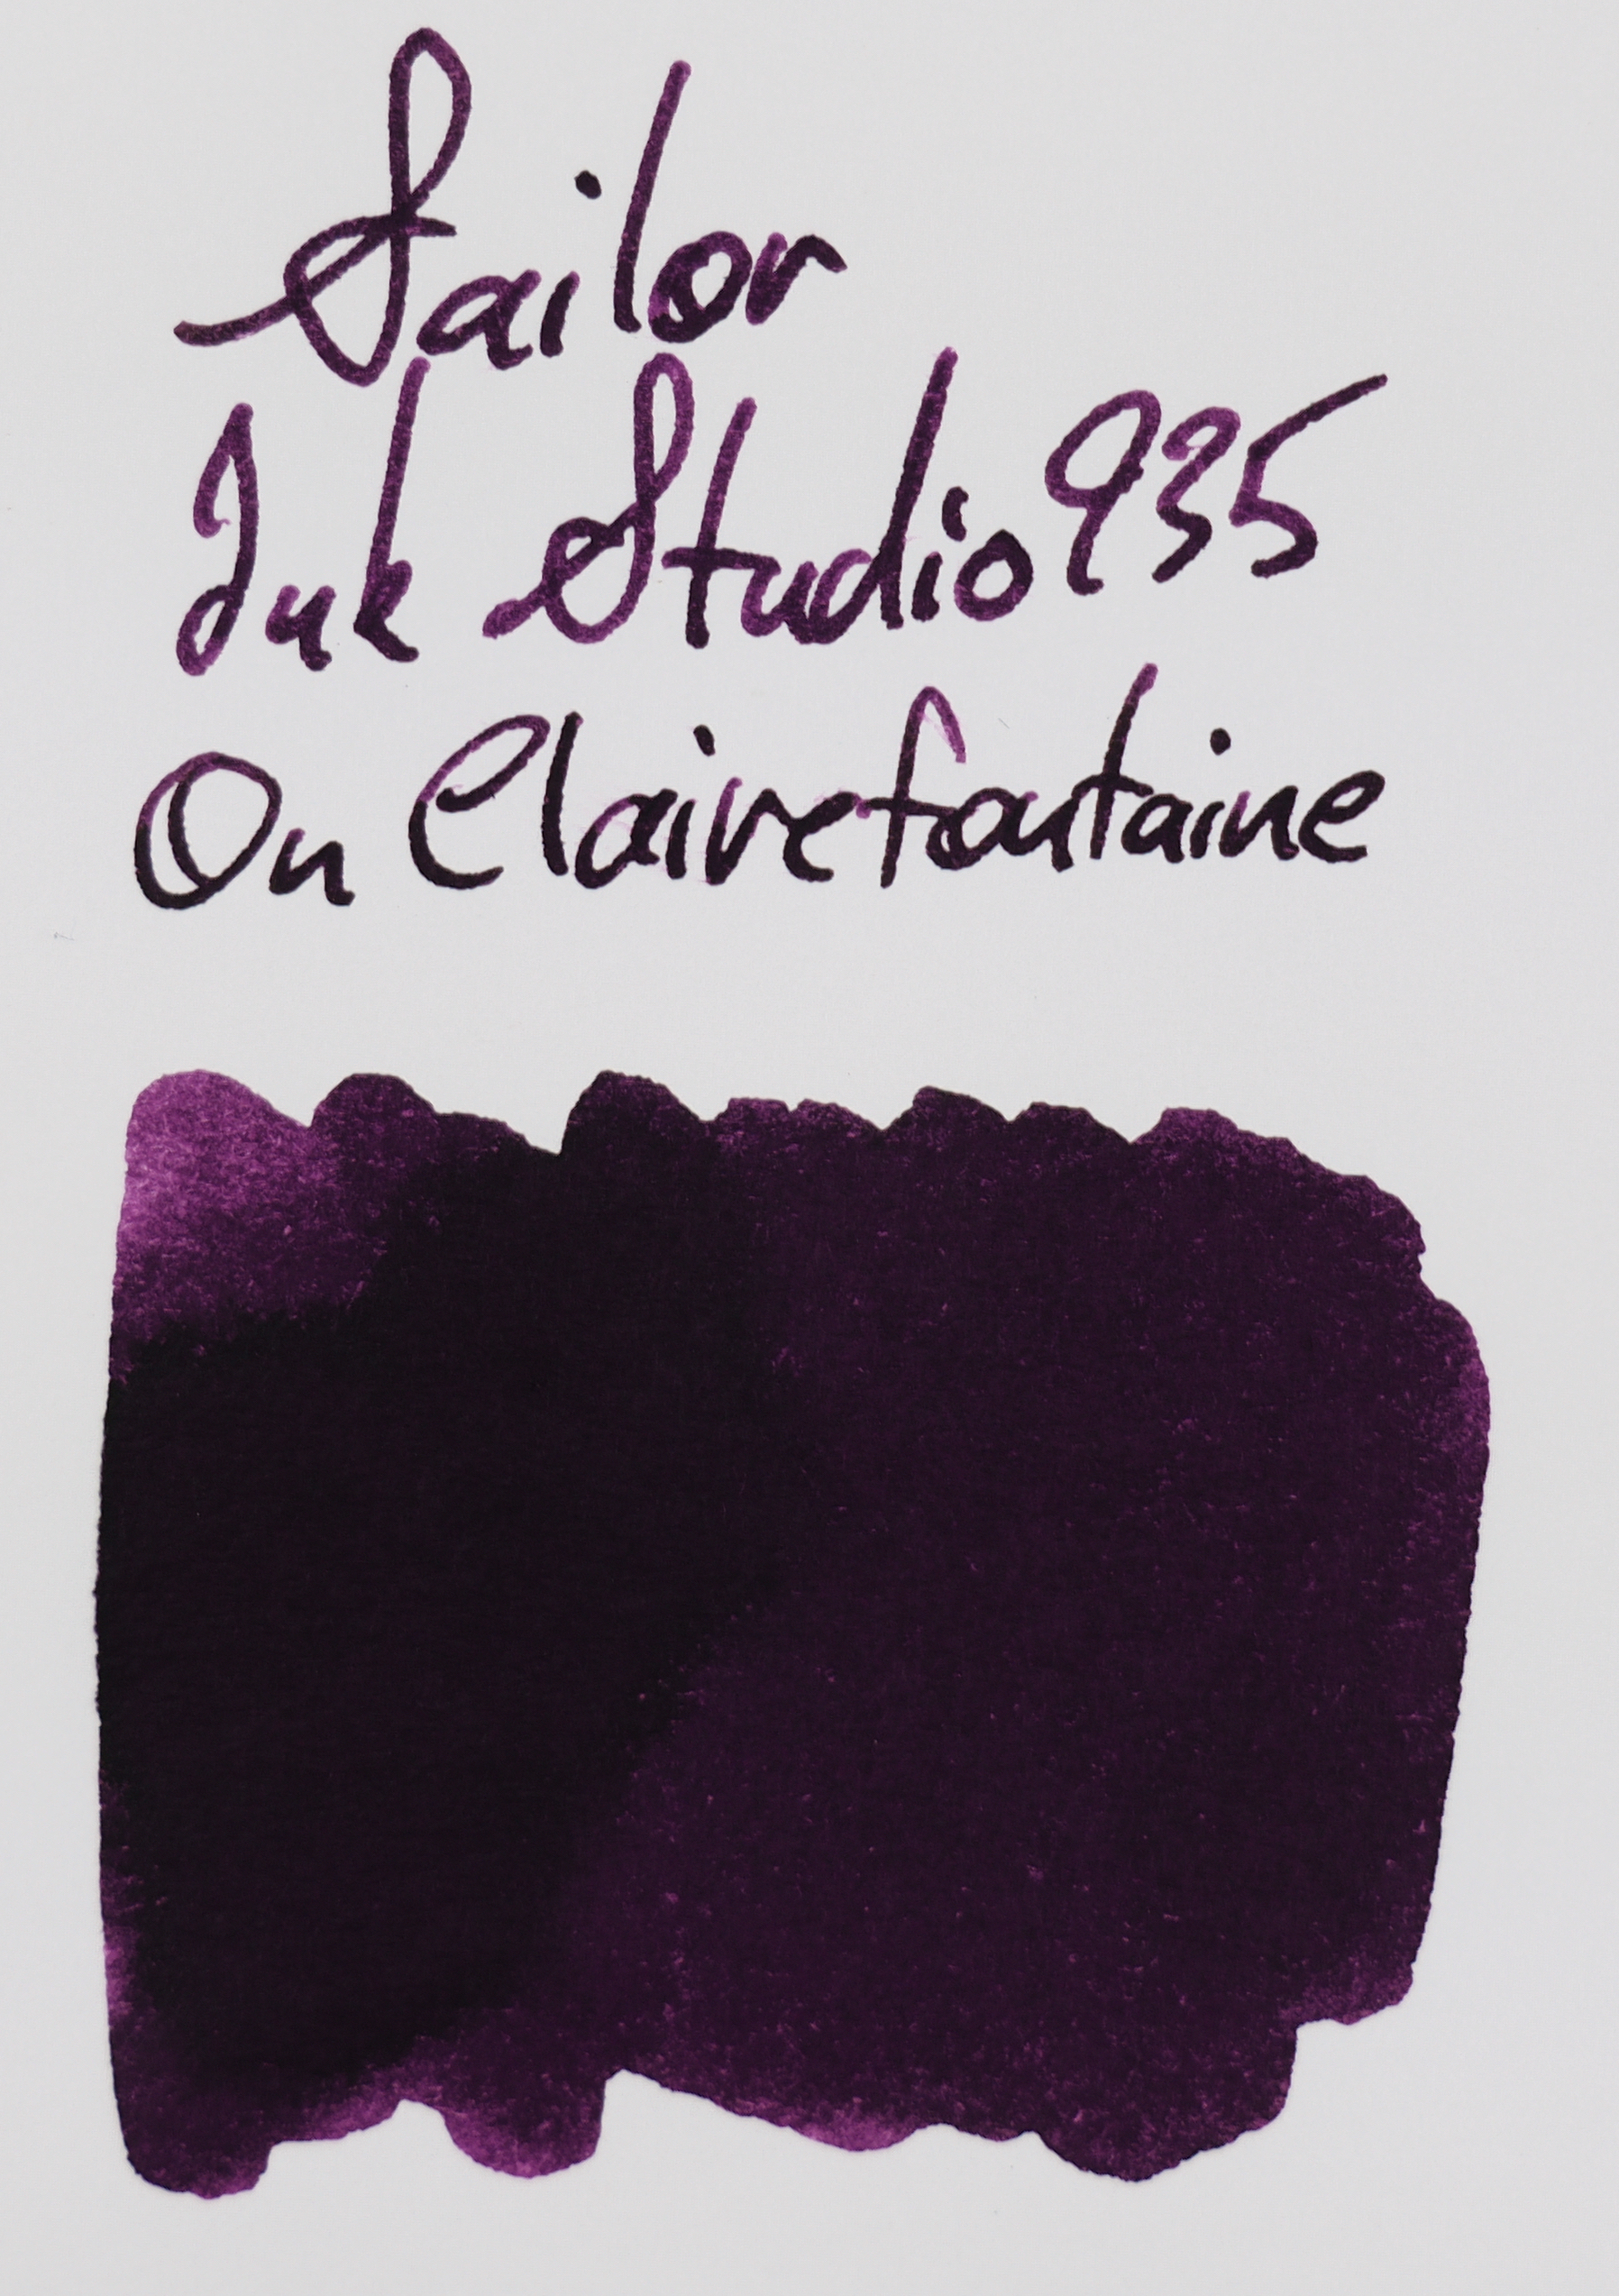 Paper Clairefontaine.jpg